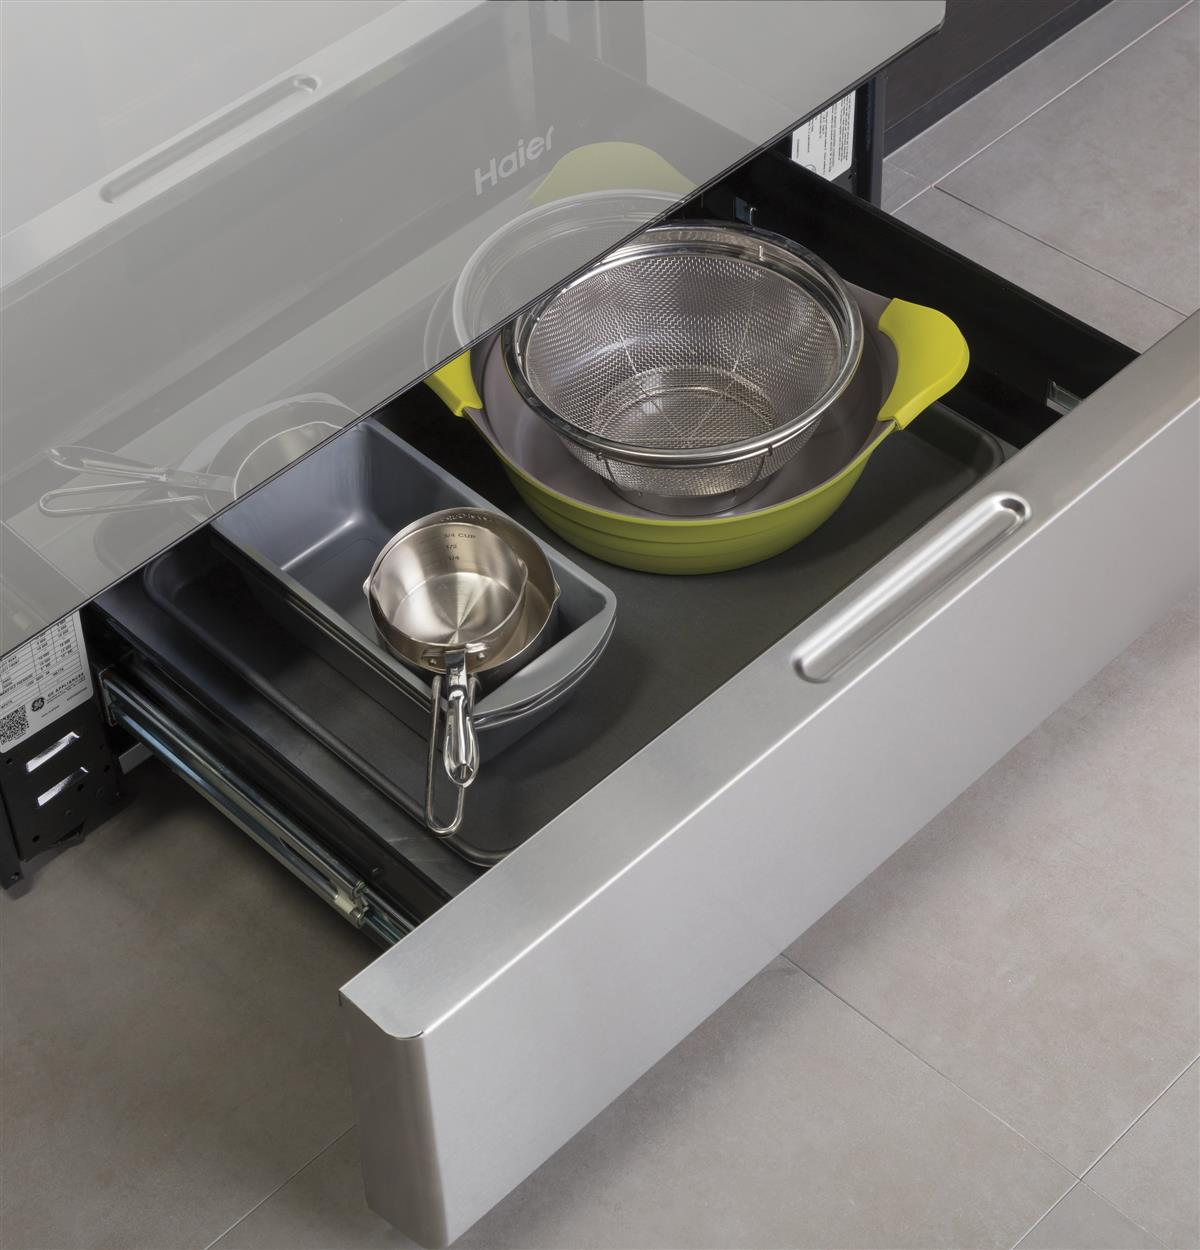 On your balcony or in your kitchen, additional space is always welcome. Full-width storage drawer is perfect for keeping cookware or kitchen accessories handy.